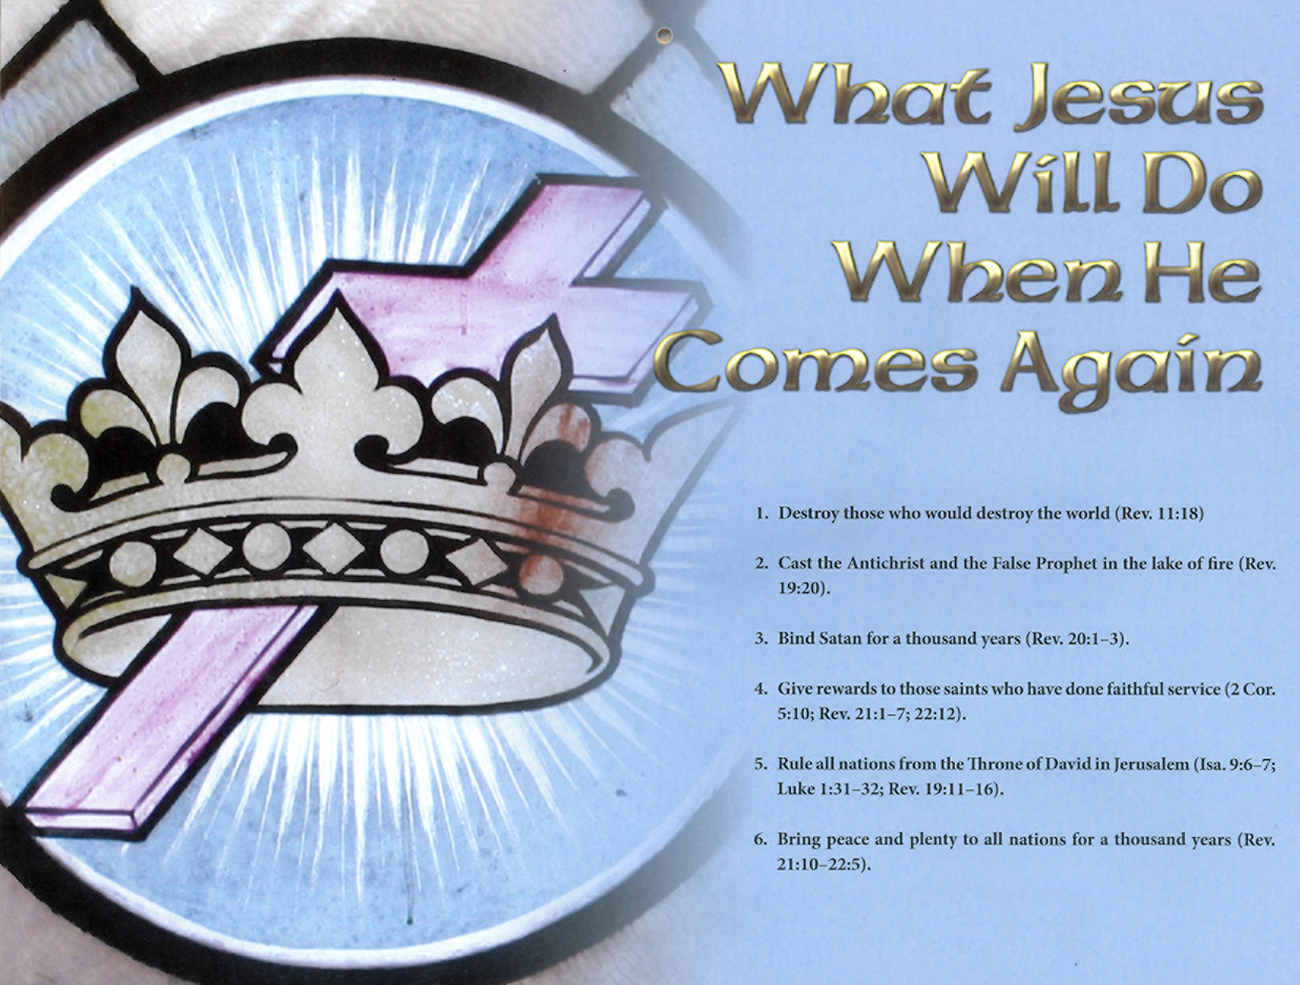 2013 Prophecy Calendar: December - What Jesus Will Do When He Comes Again